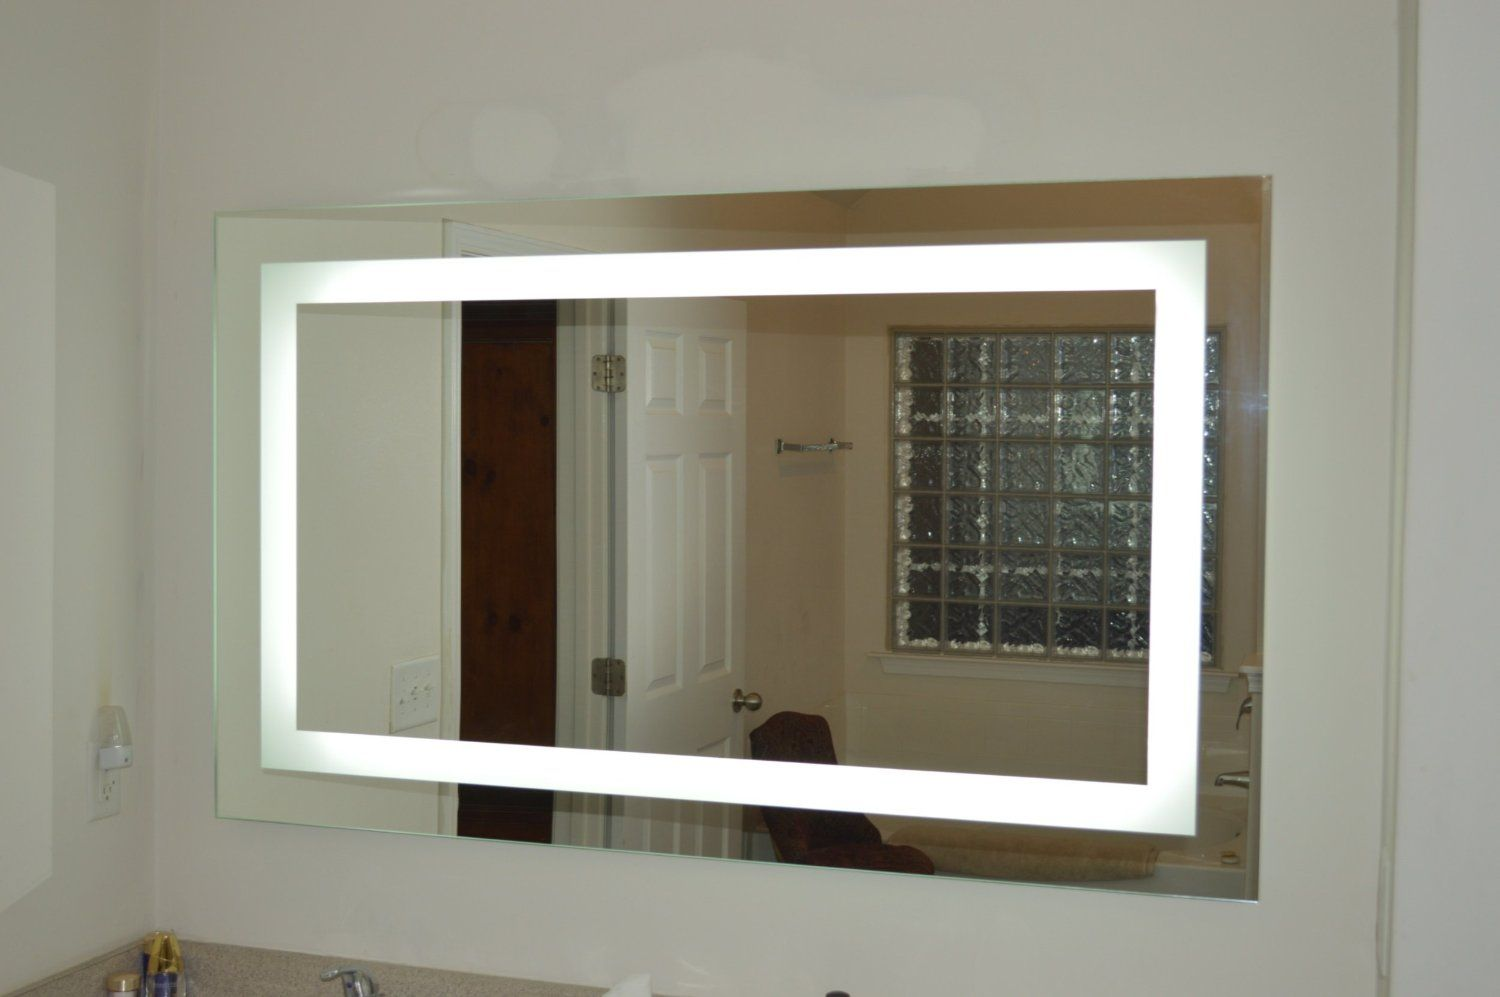 Amazon Lighted Vanity Mirror LED MAM86036 Commercial Grade 60 Wide X 36 Tall Home Kitchen